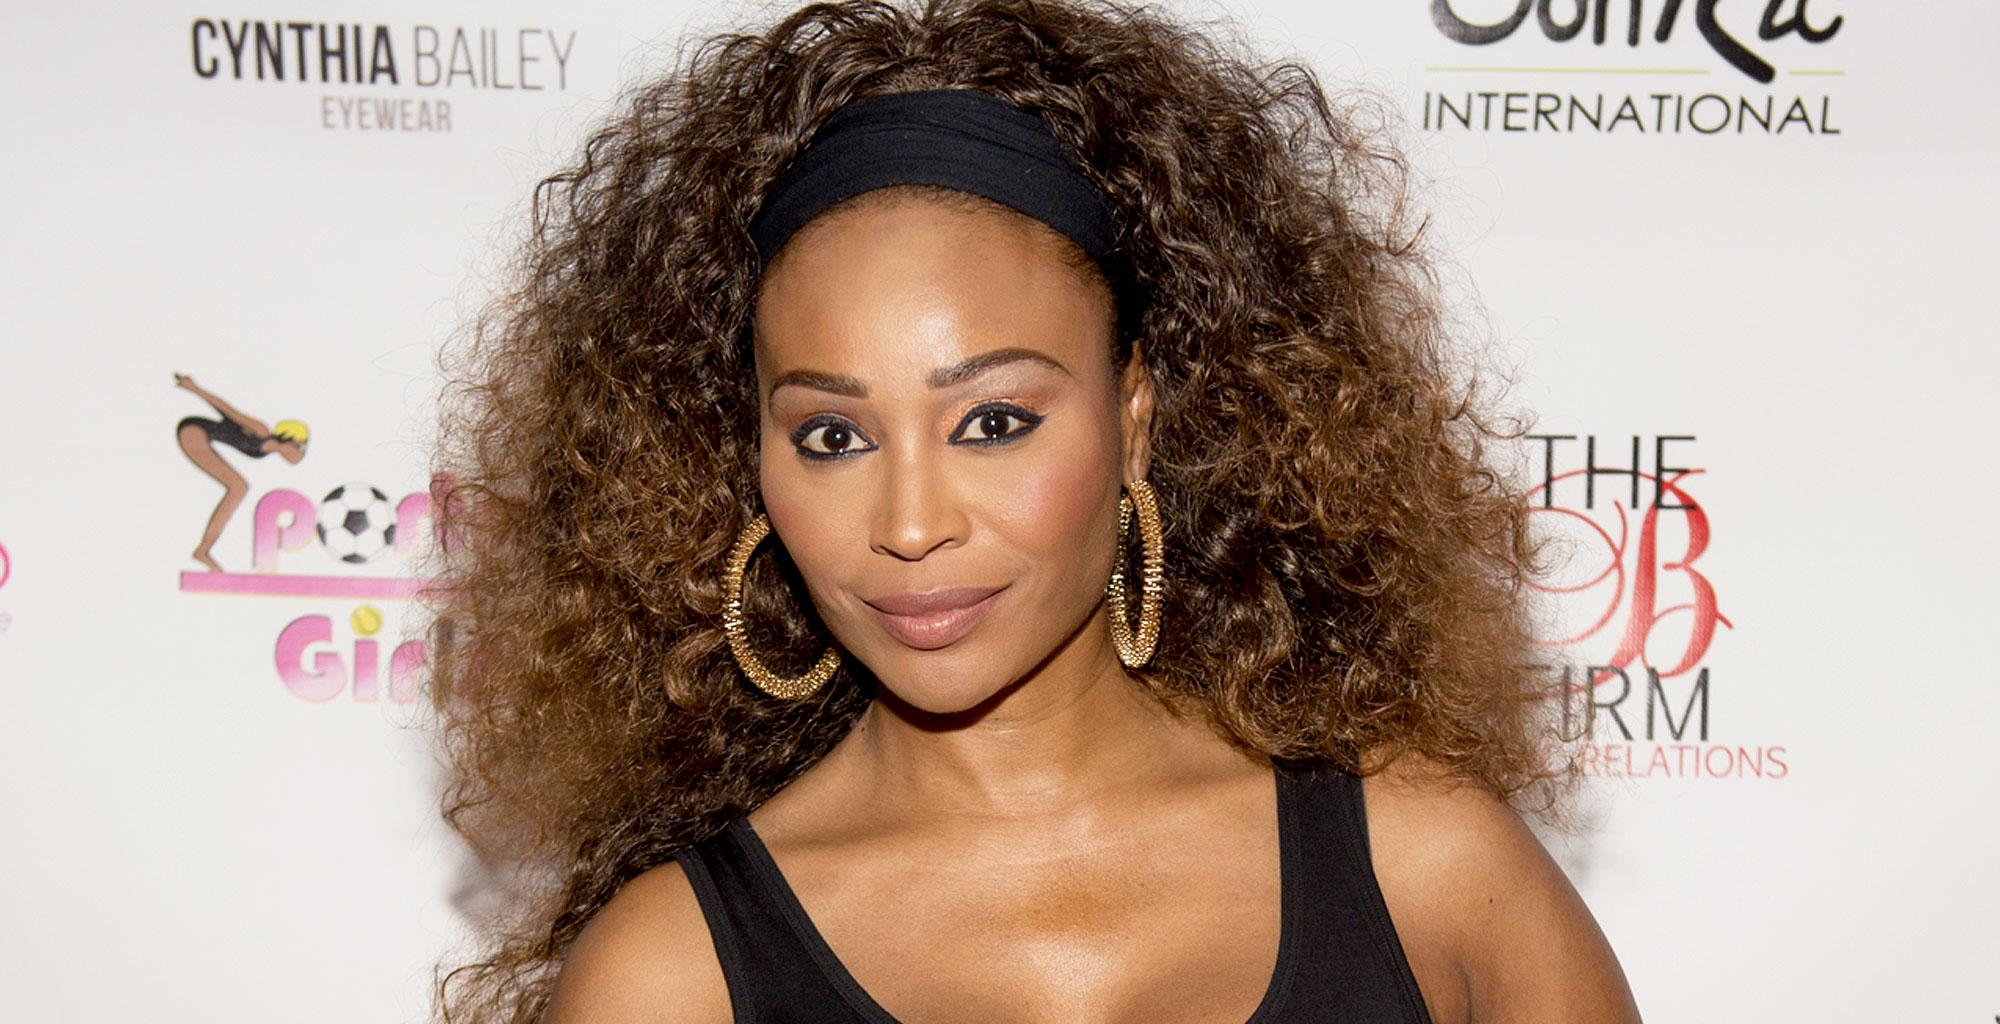 Cynthia Bailey Graces The Cover Of The January Edition Of Empower Magazine